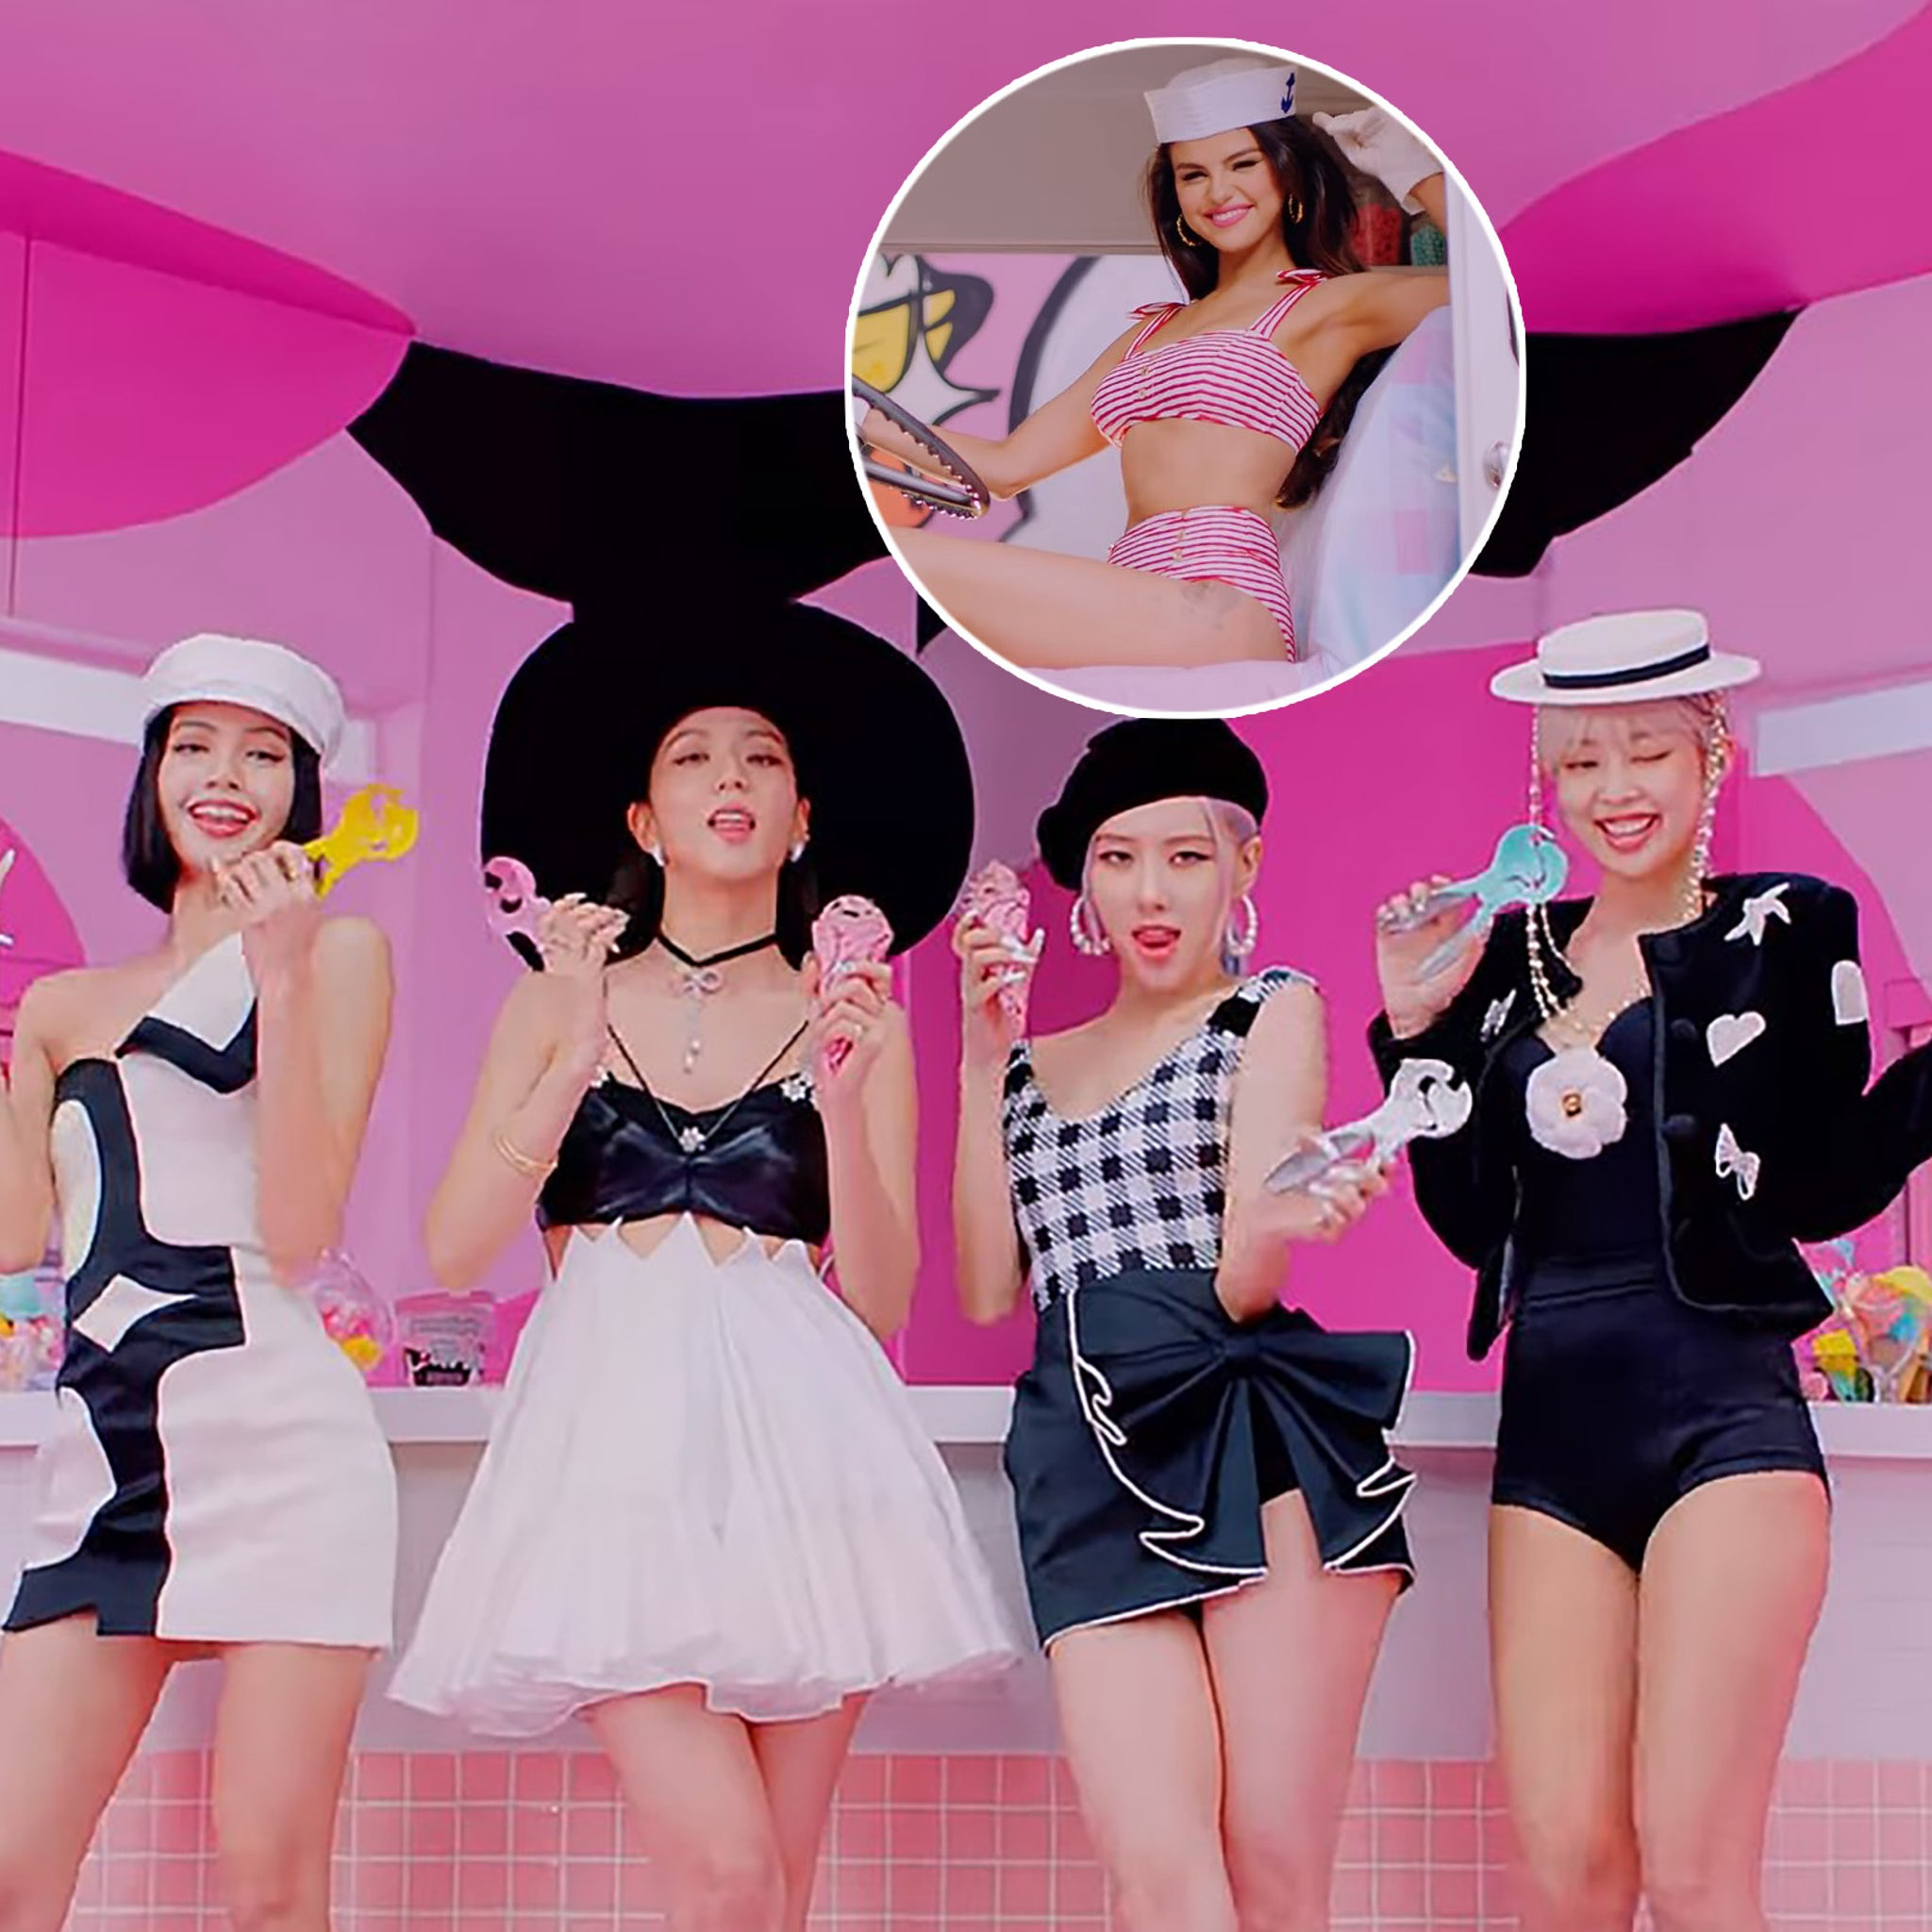 Selena Gomez And Blackpink Join Forces For Sexy Sweet Ice Cream Music Video